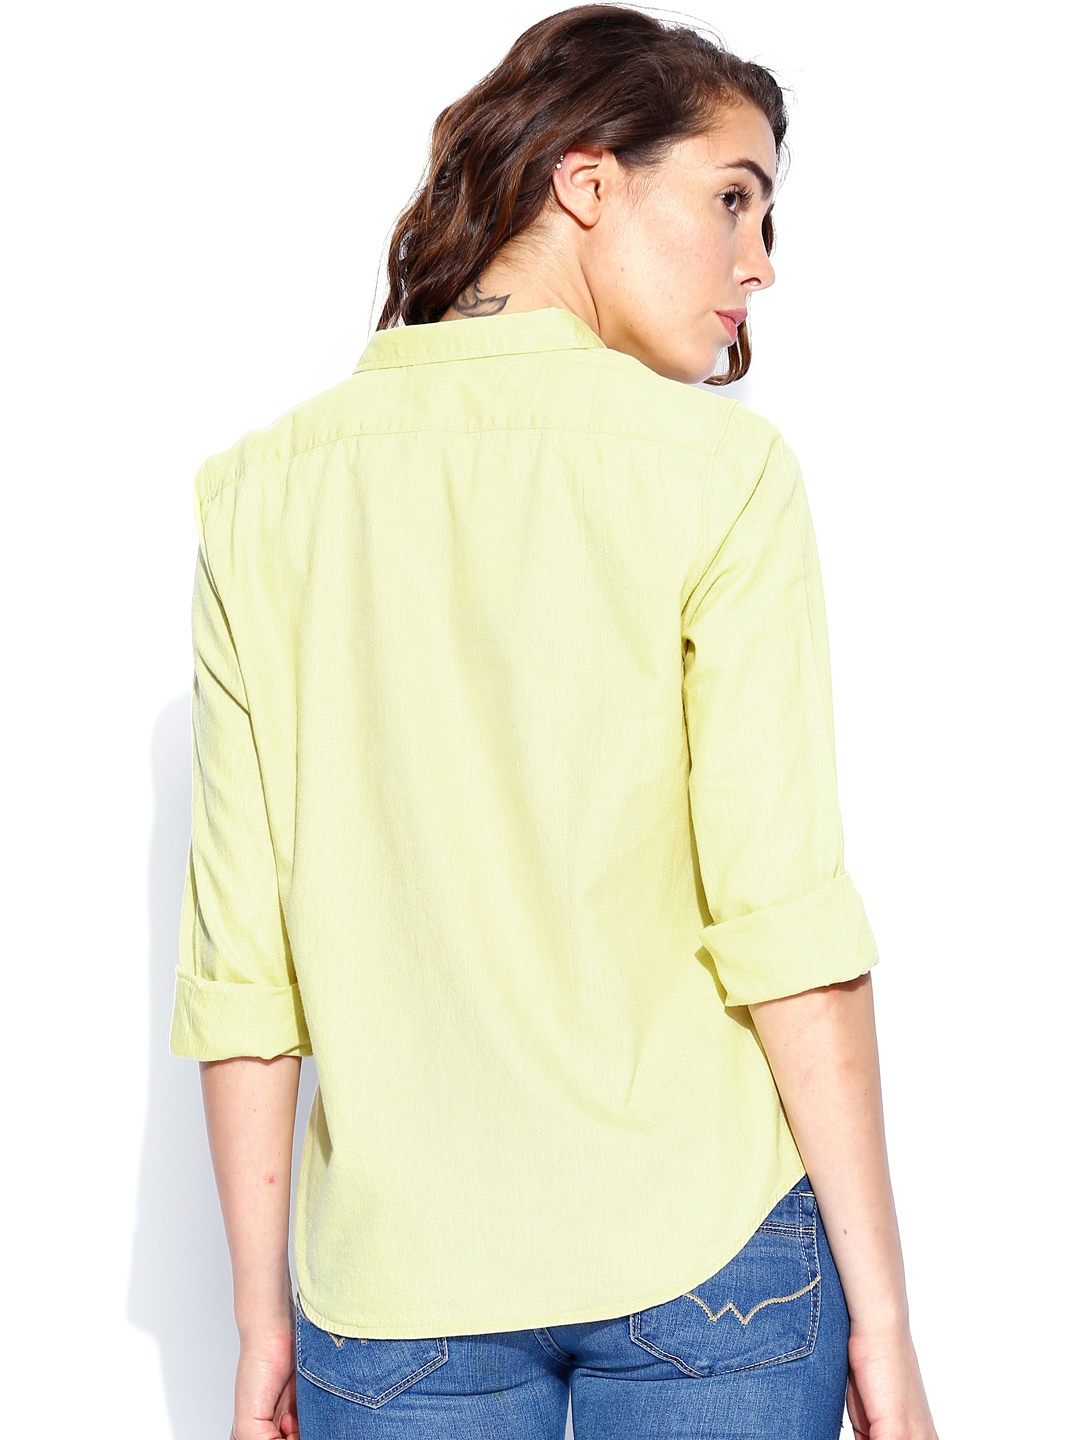 Myntra levis lime green linen shirt 801136 buy myntra for Shirts online shopping lowest price